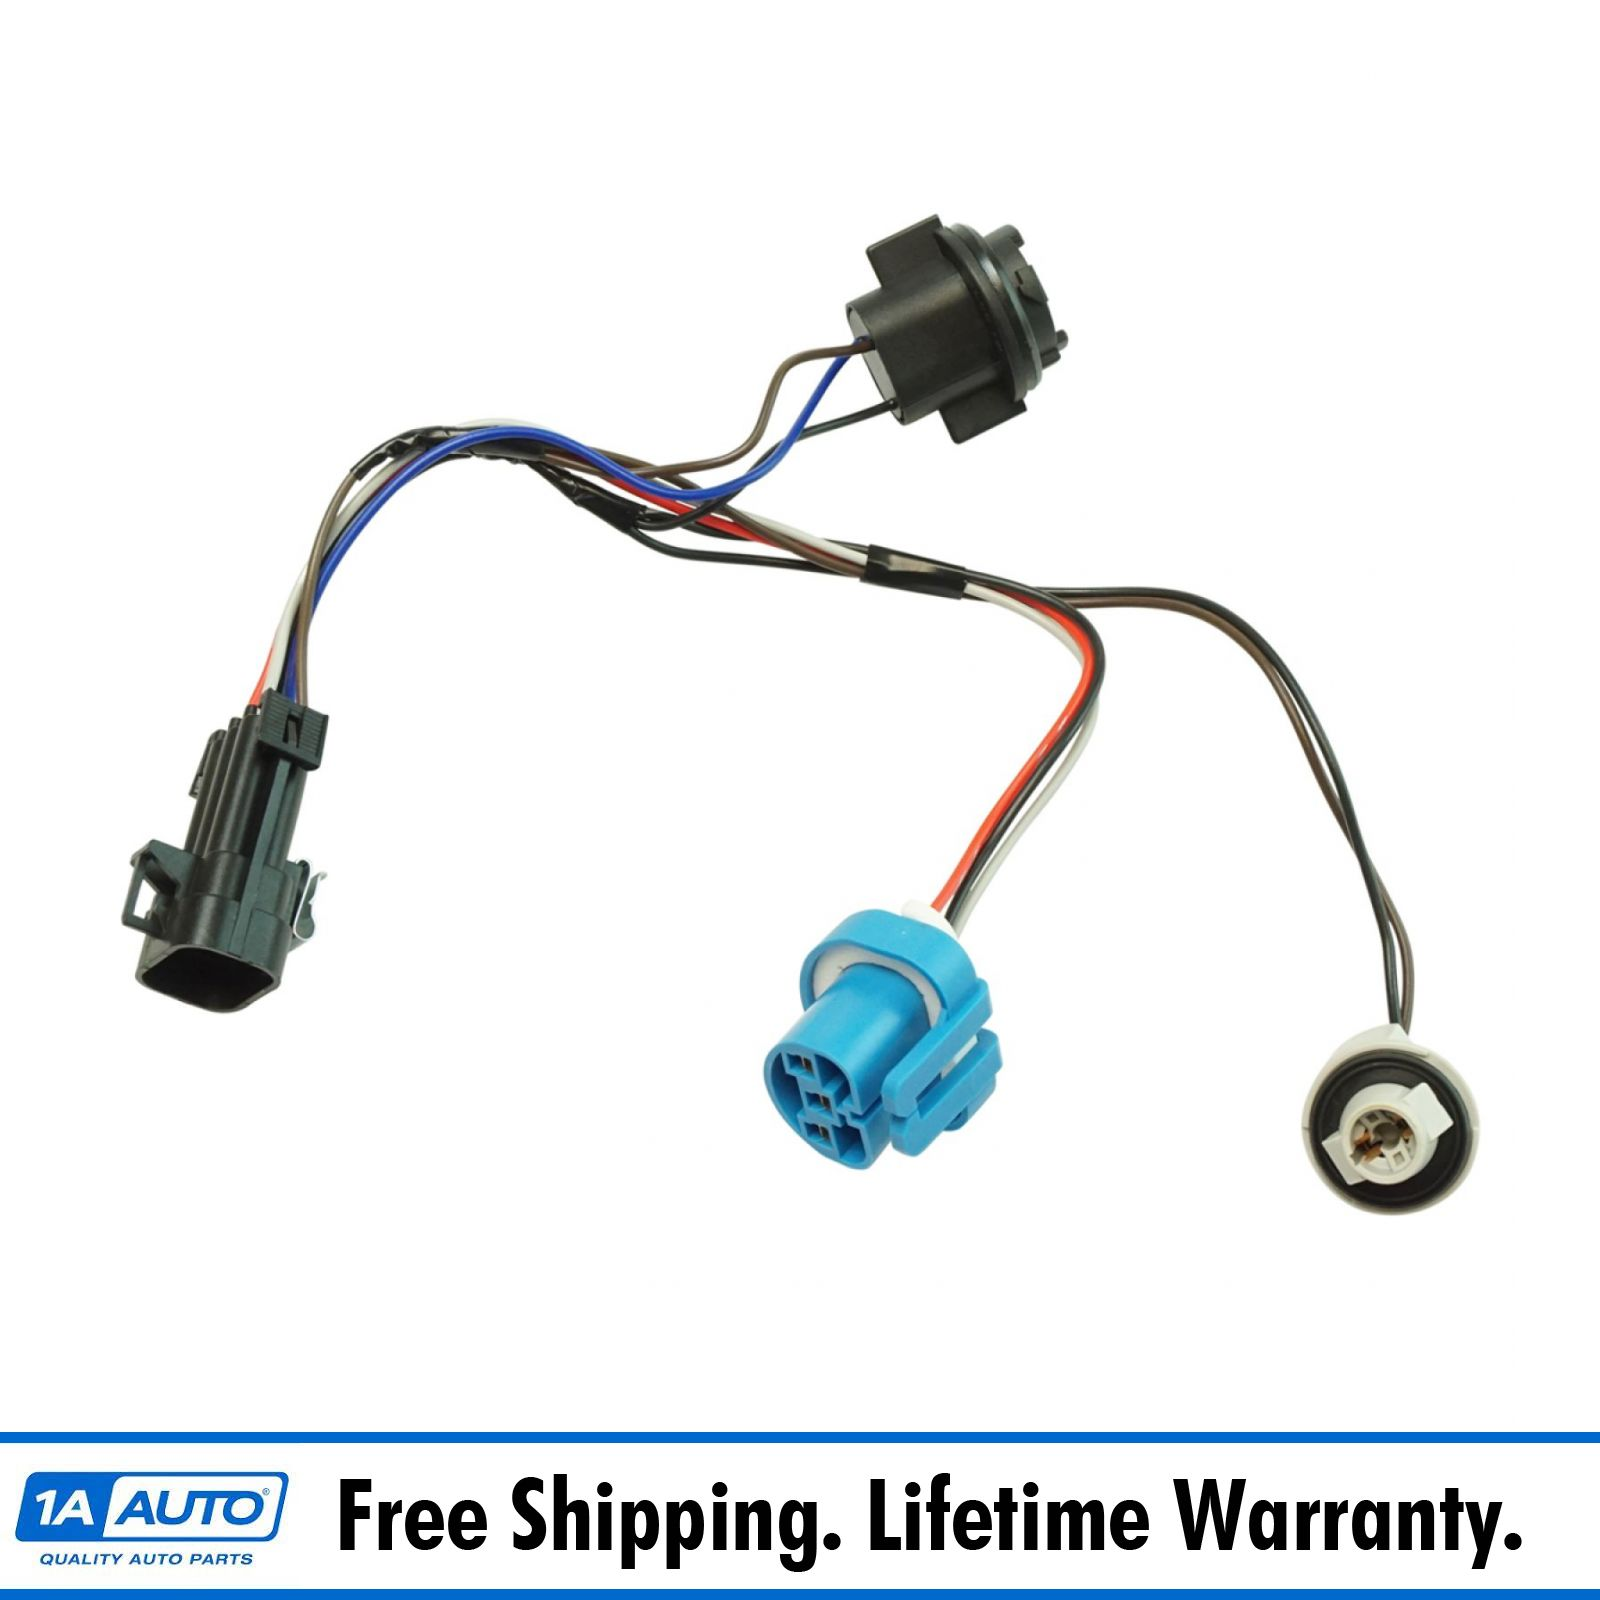 hight resolution of dorman headlight wiring harness or side for chevy cobalt pontiac g5 pursuit